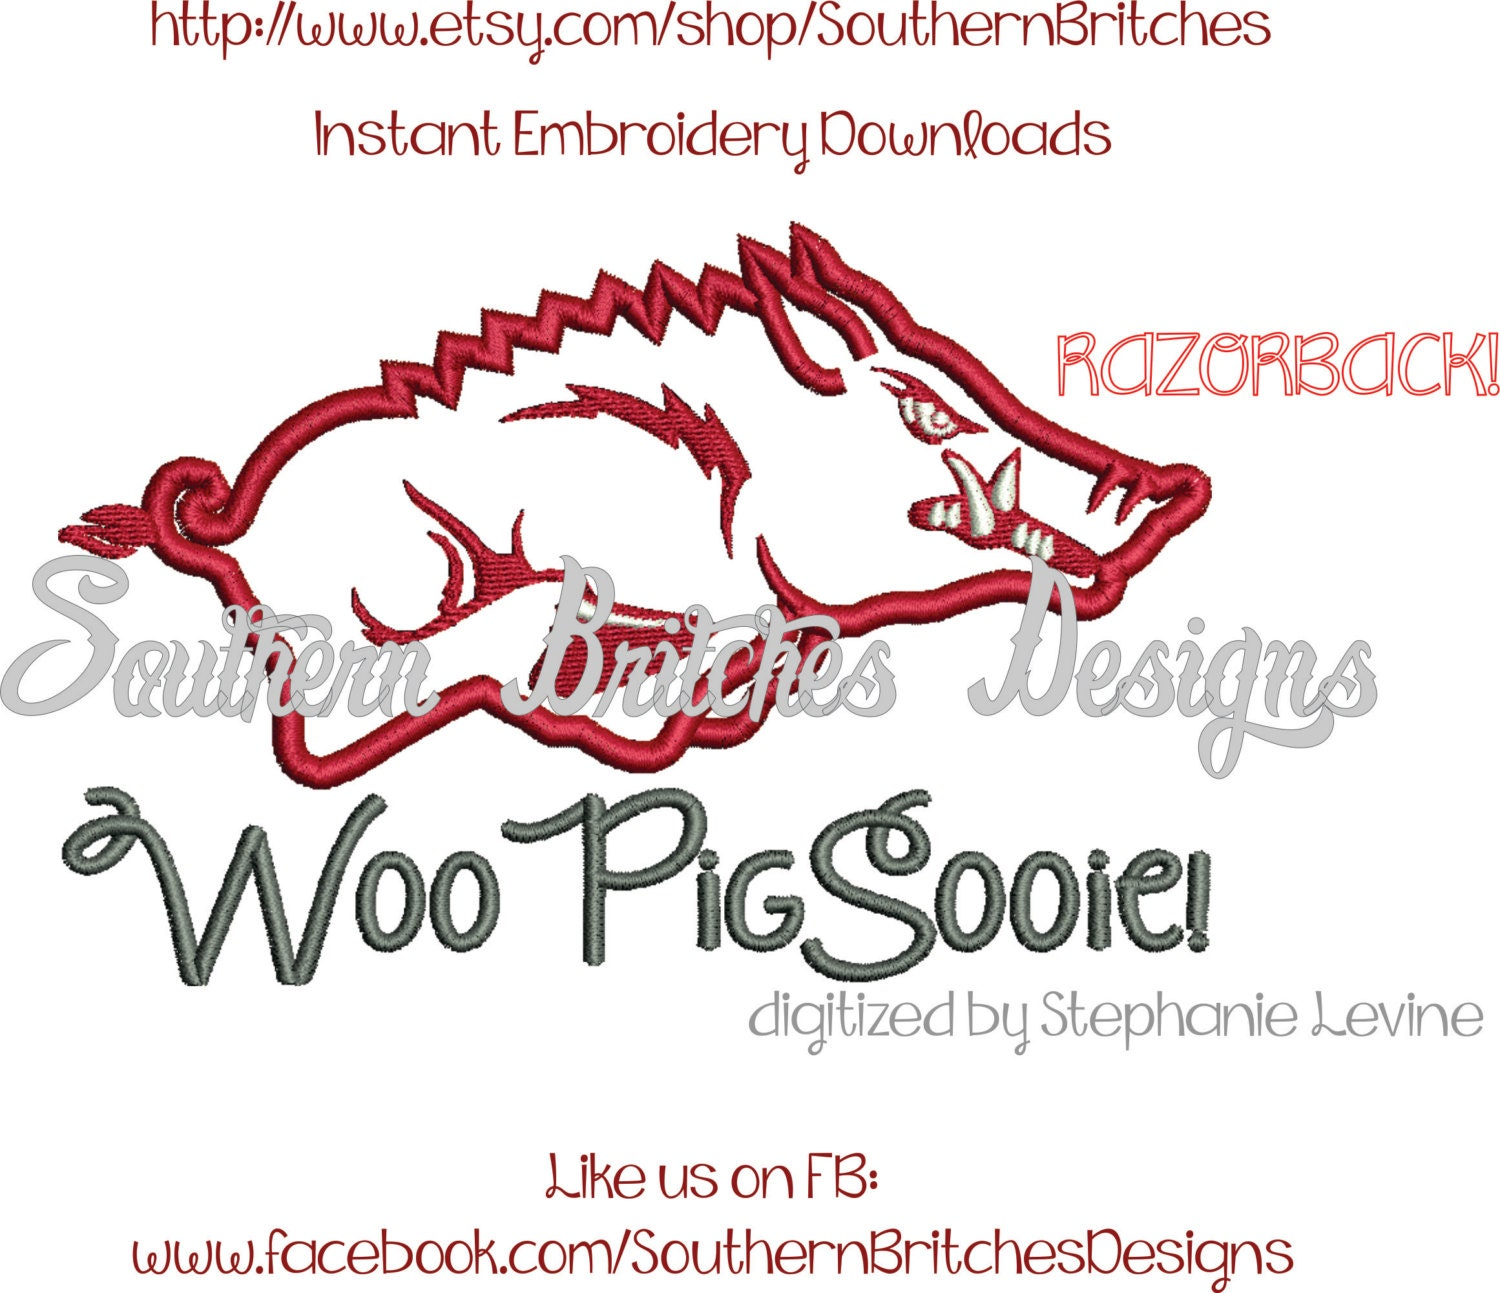 and razorbacks red sg en arkansas bowl razorback faded il decor orange fans description beat listing oklahoma fullxfull champs